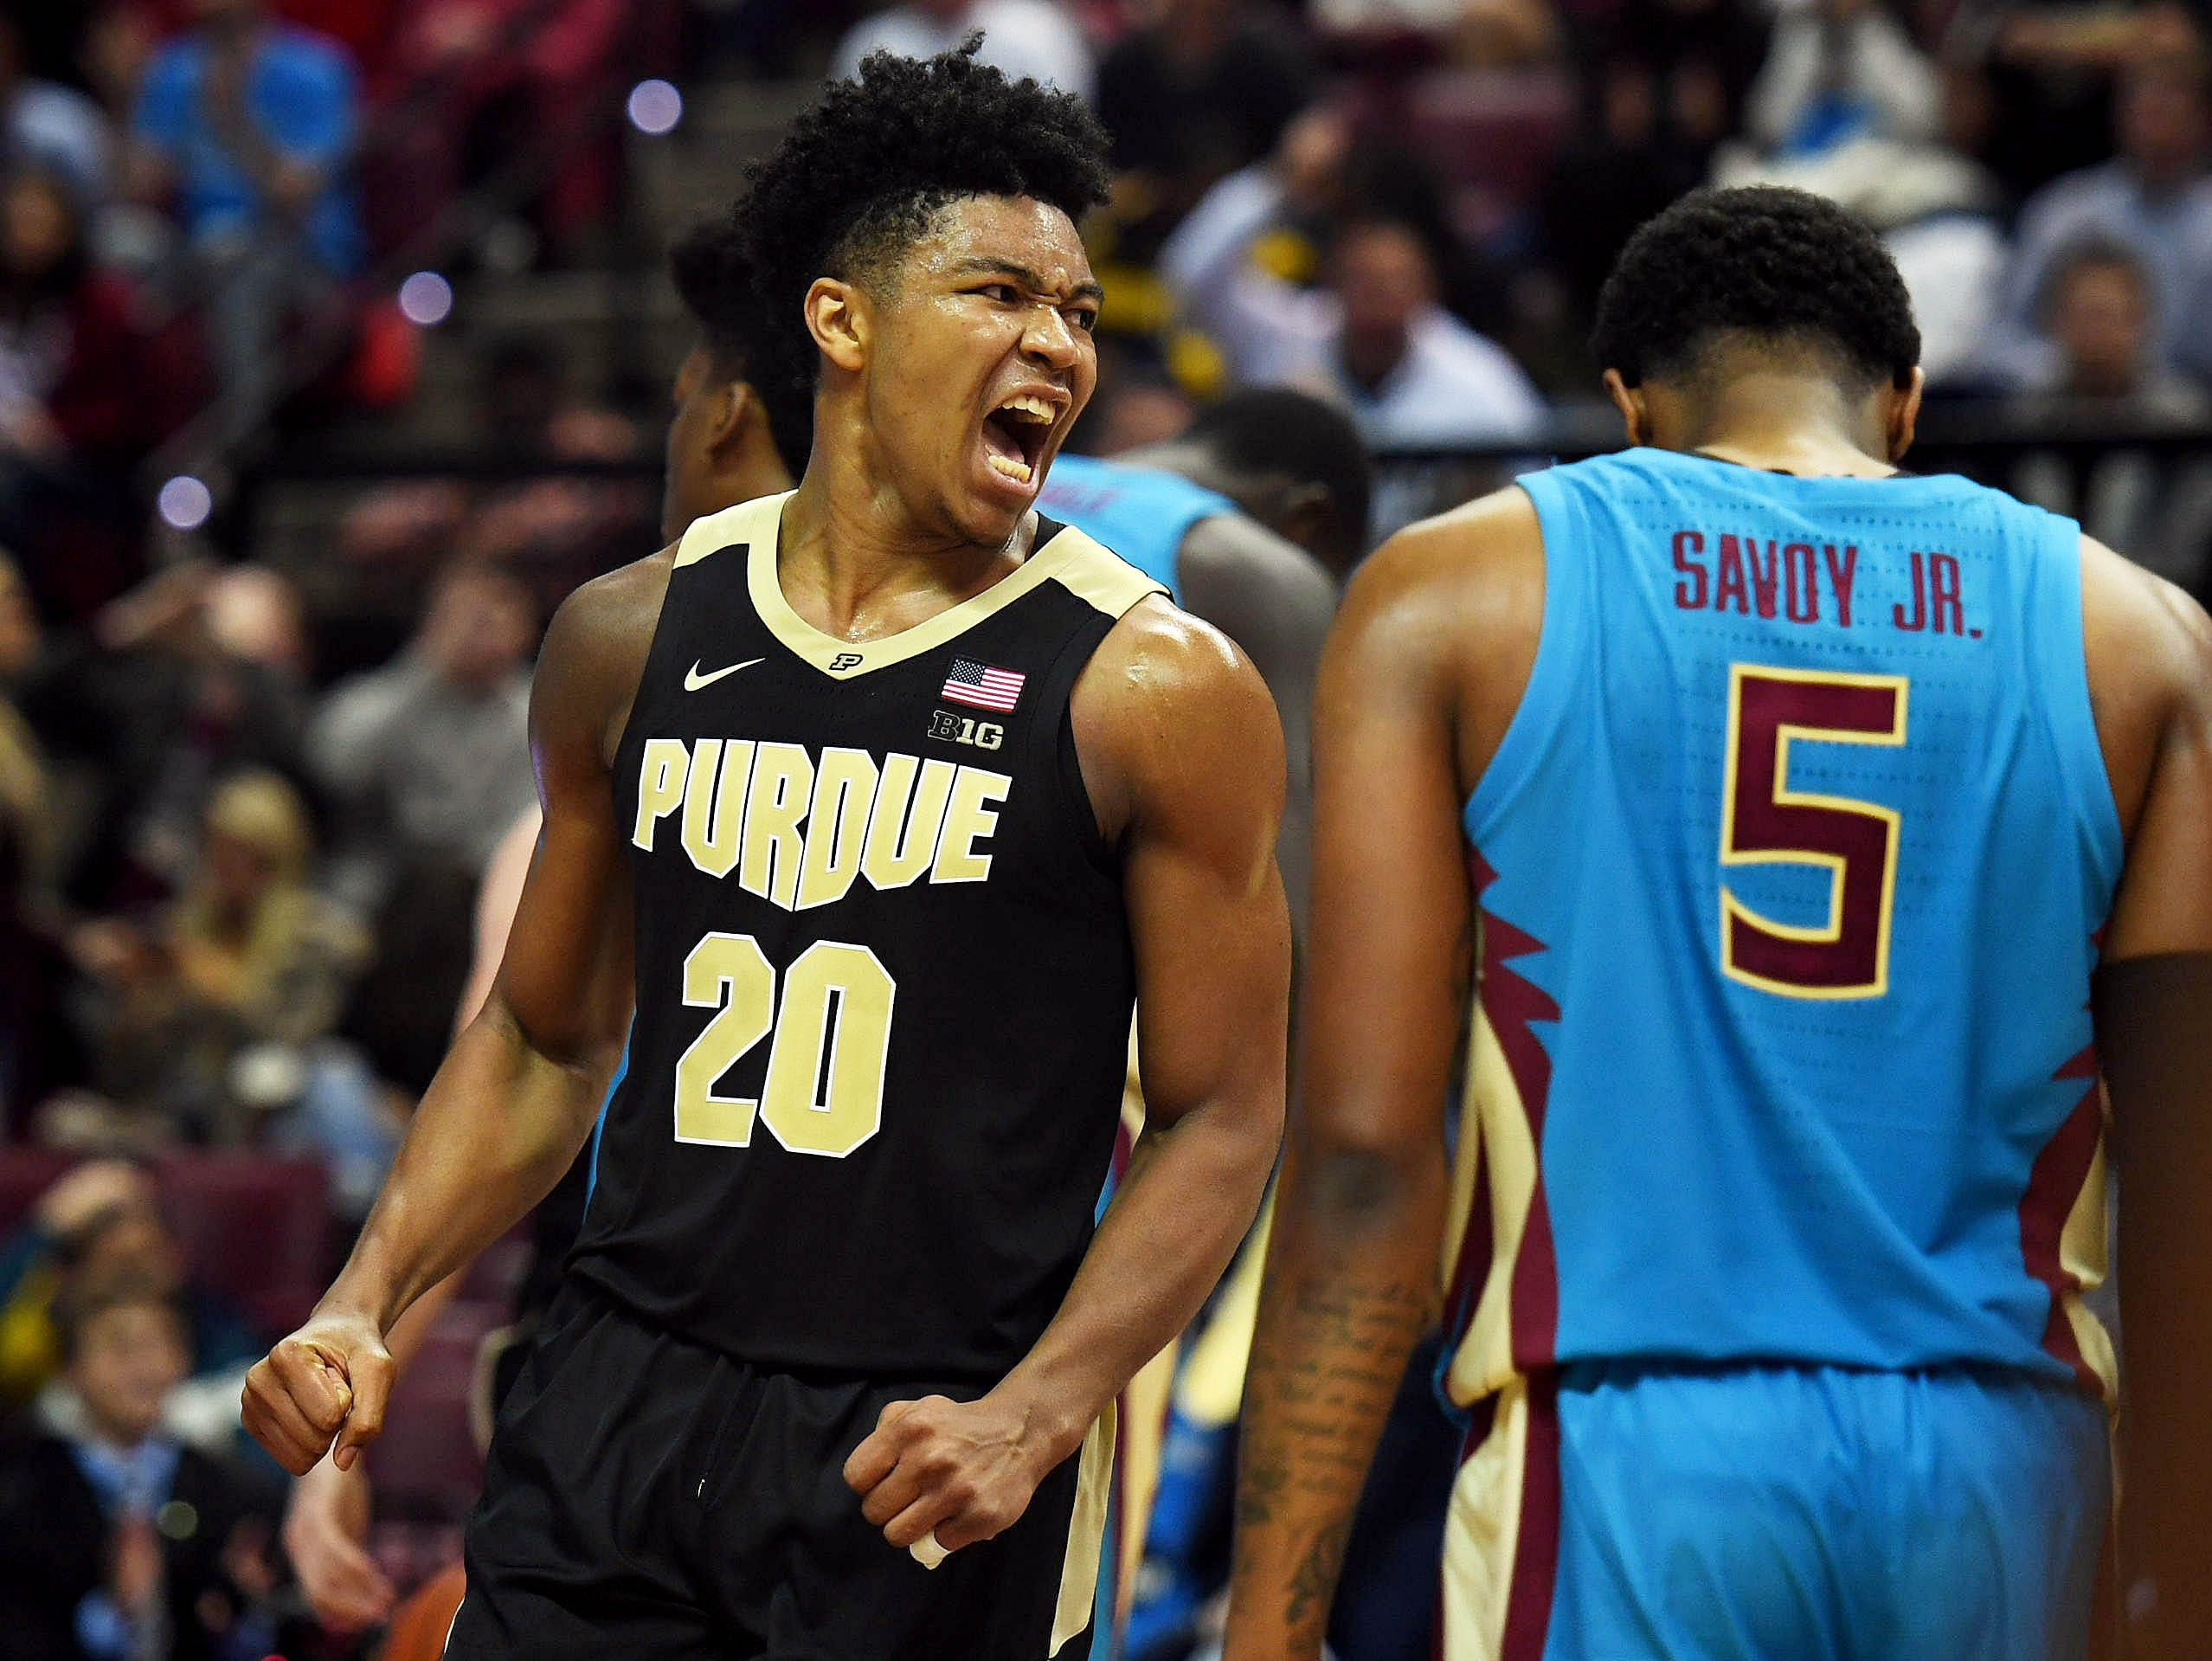 Nov 28, 2018; Tallahassee, FL, USA; Purdue Boilermakers guard Nojel Eastern (20) reacts after a play during the second half against the Florida State Seminoles at Donald L. Tucker Center. Mandatory Credit: Melina Myers-USA TODAY Sports